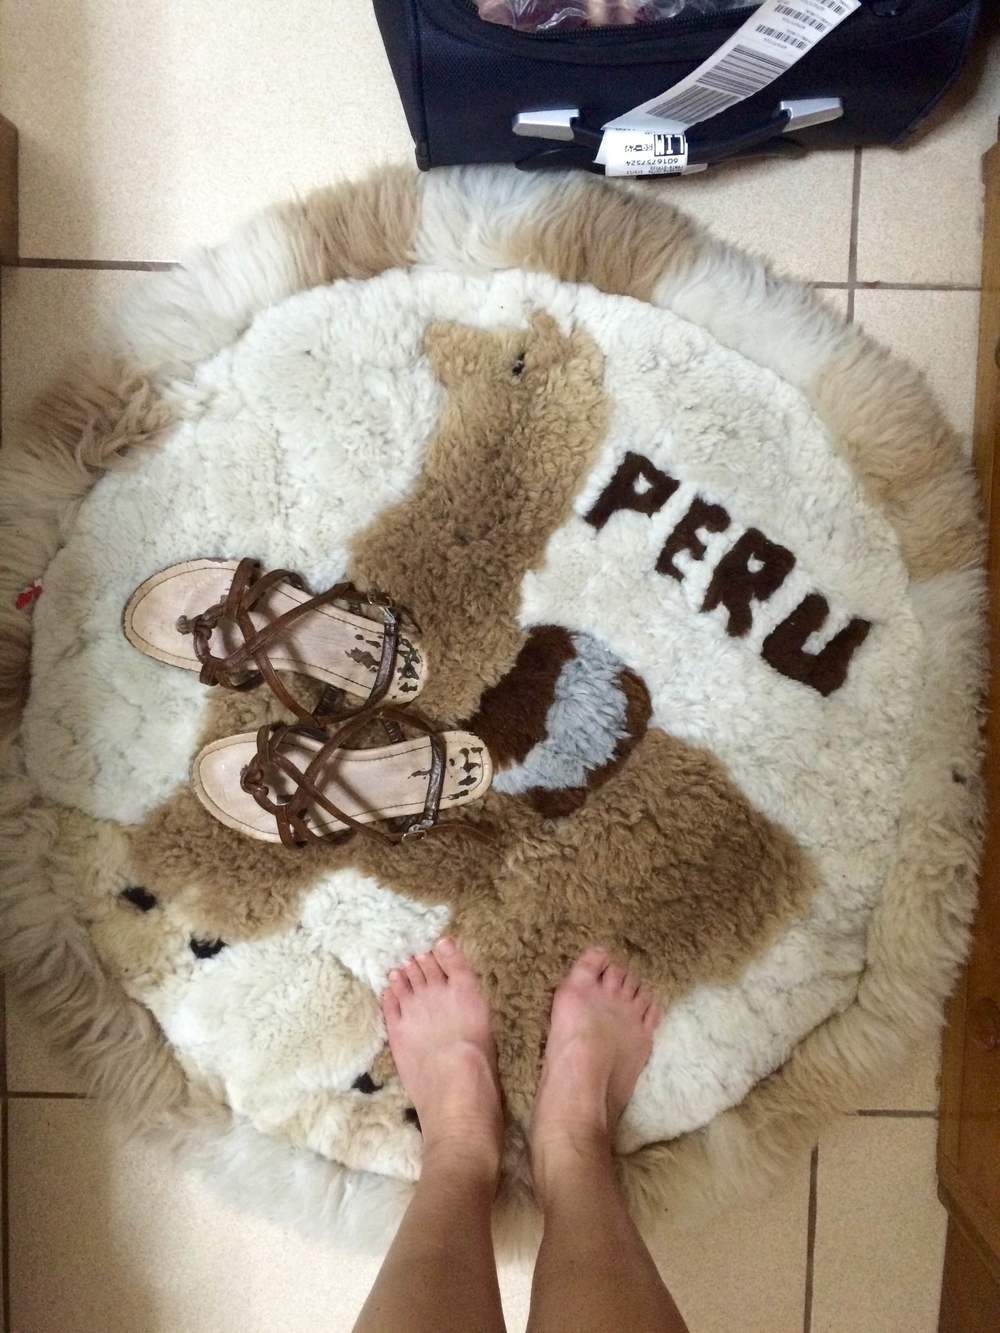 How cute is this alpaca rug though